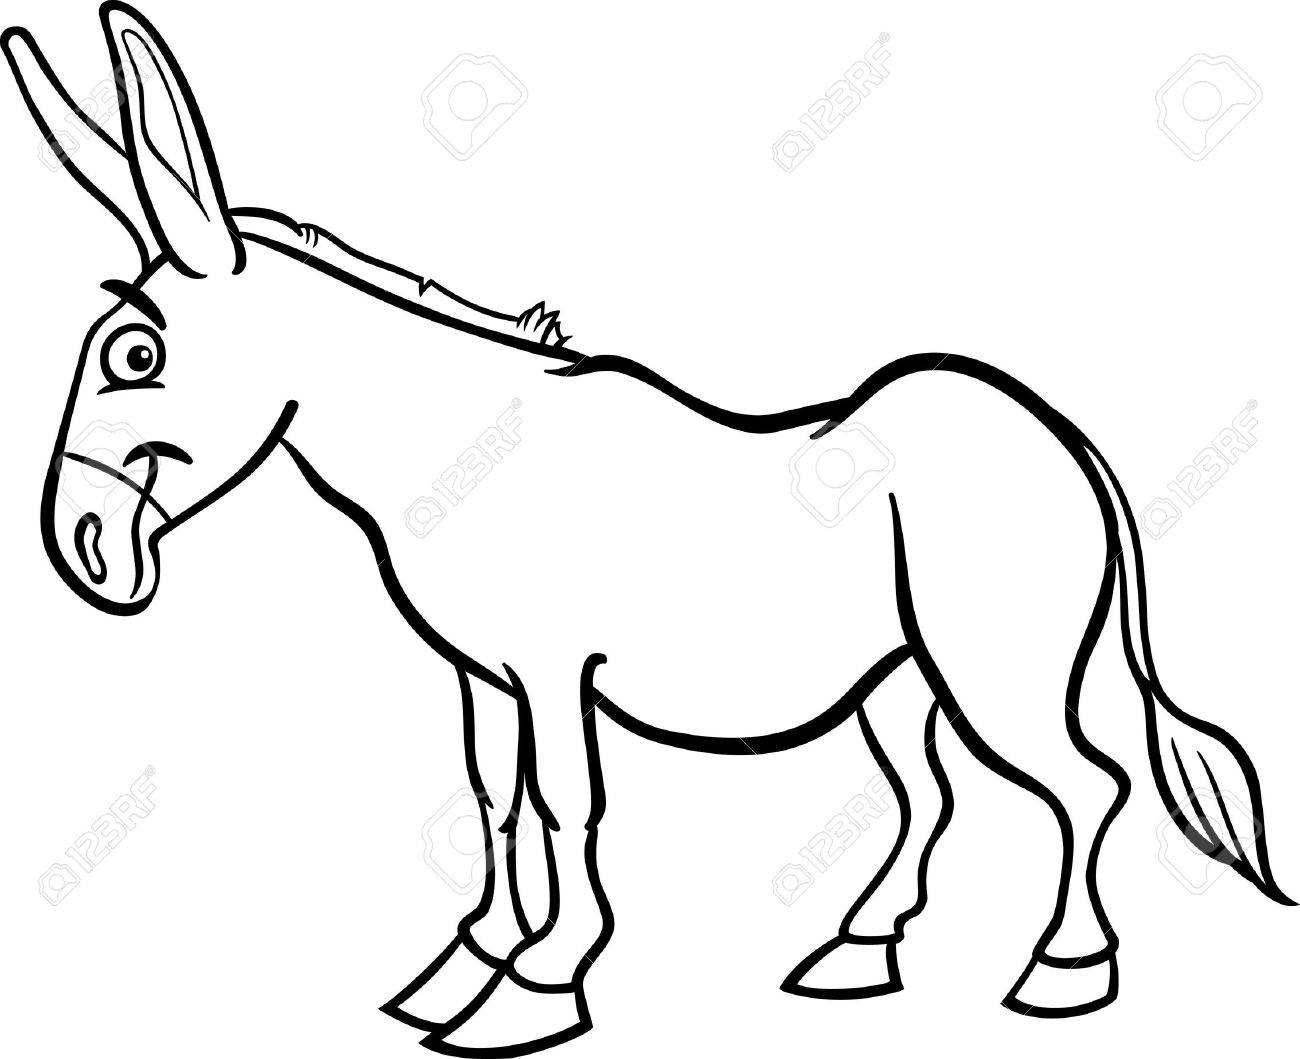 Black and white donkey clipart 5 » Clipart Station.